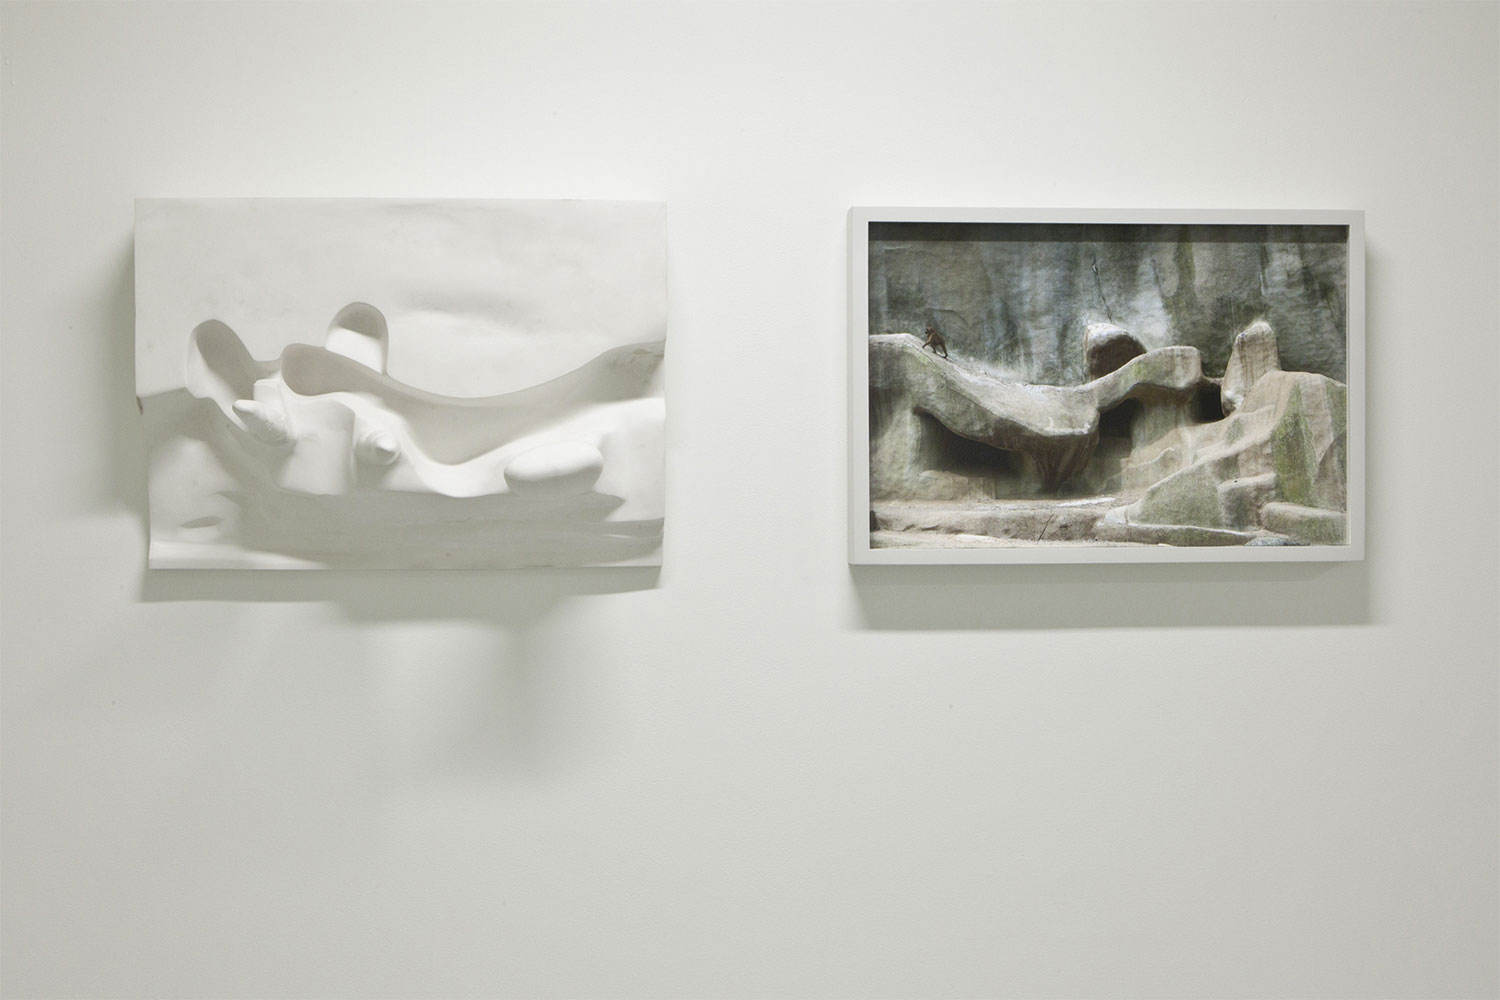 "Relief , 2008-2012, Edition of 2, Inkjet print, Hydrocal plaster, 16 ⅞"" x 48"" x 11 ¾"""